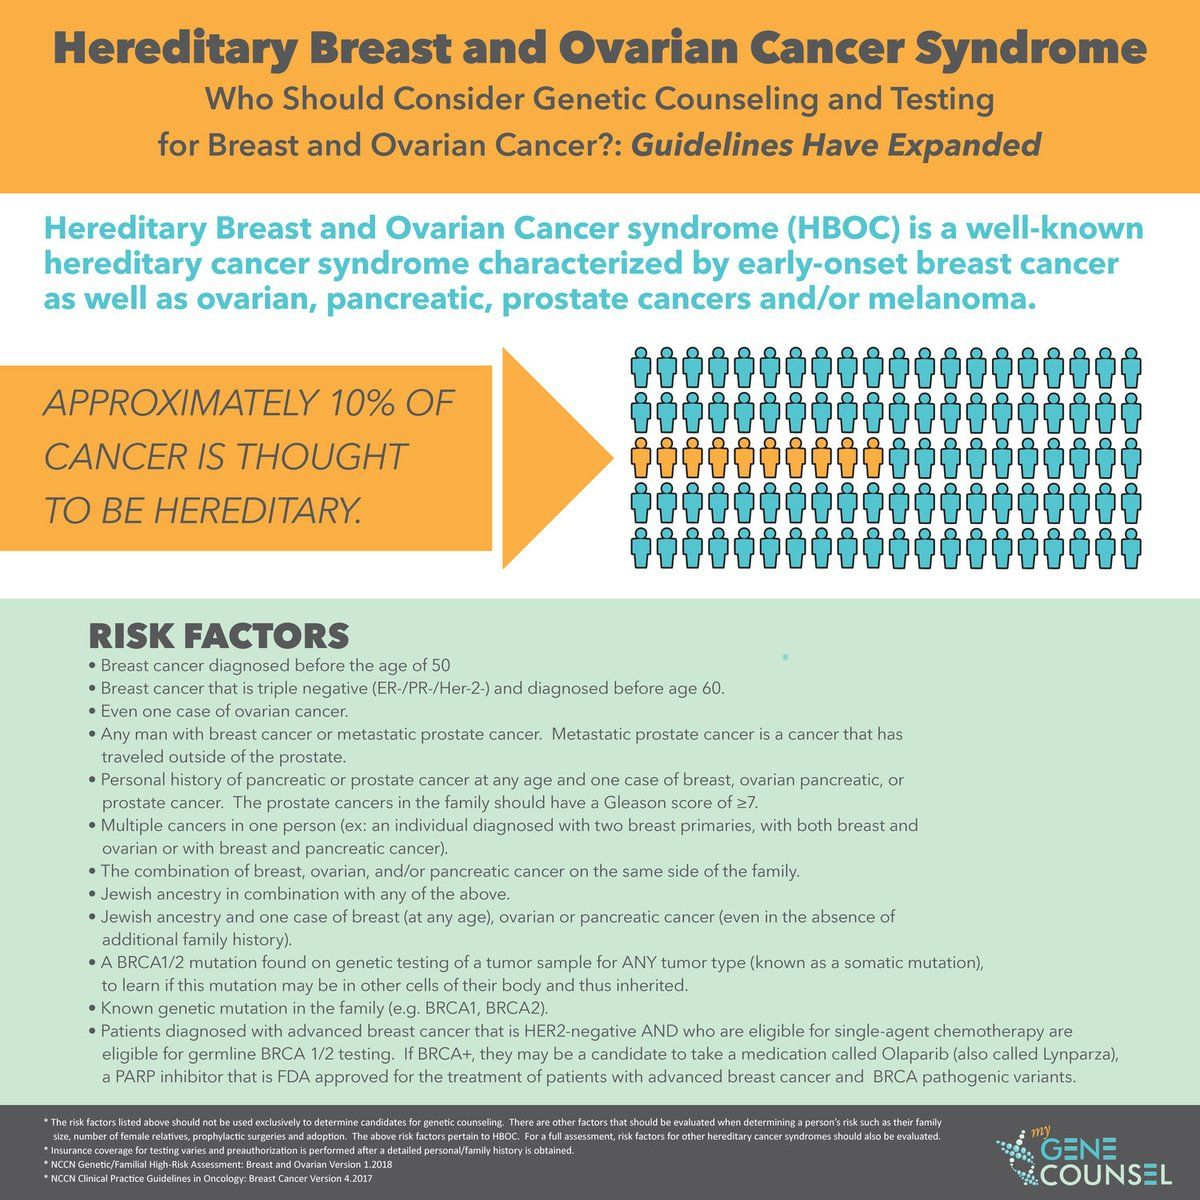 breast cancer genetic counseling guidelines